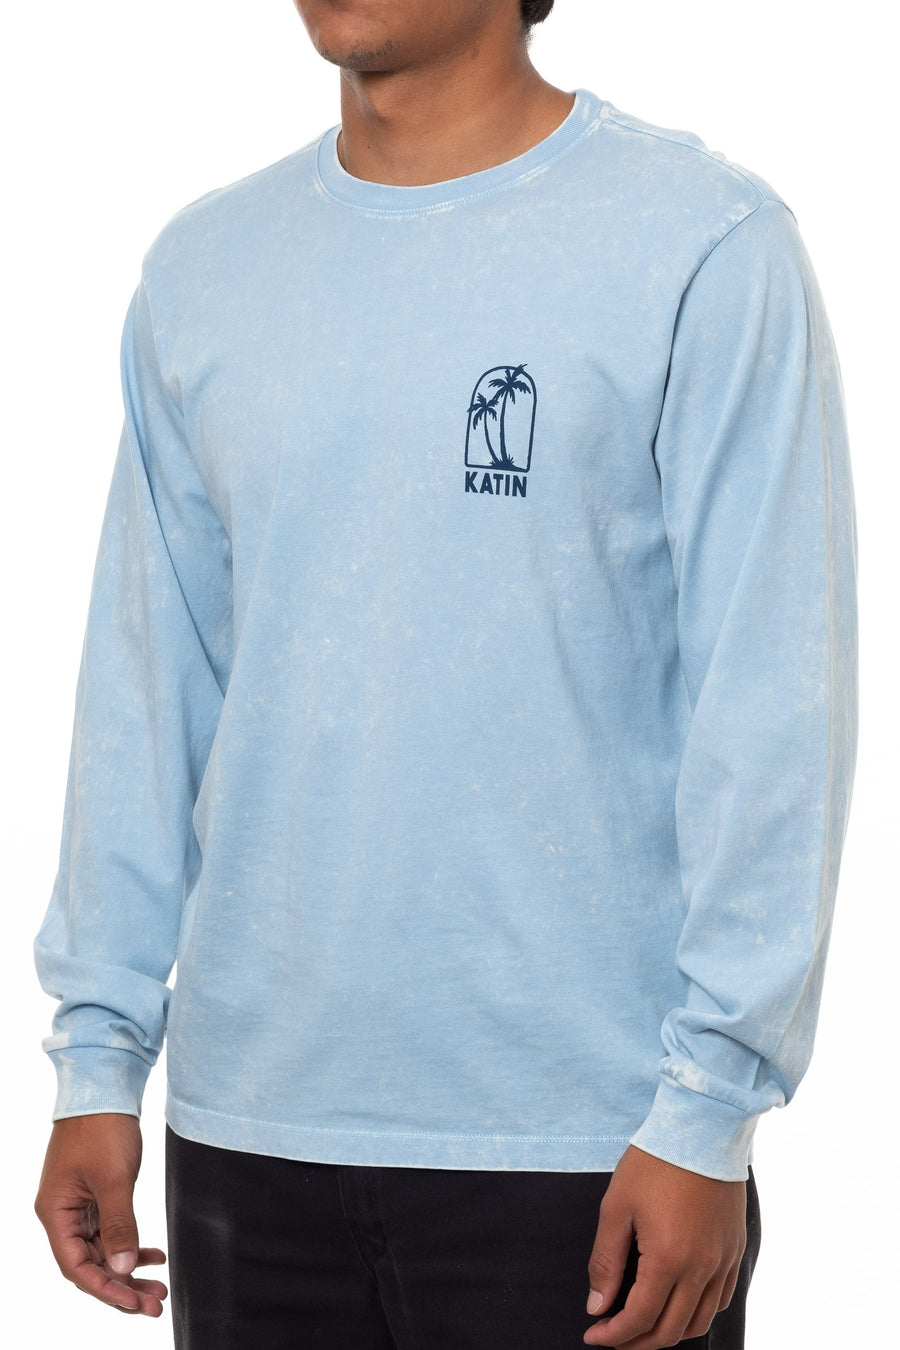 TWIN PALM LONG SLEEVE TEE